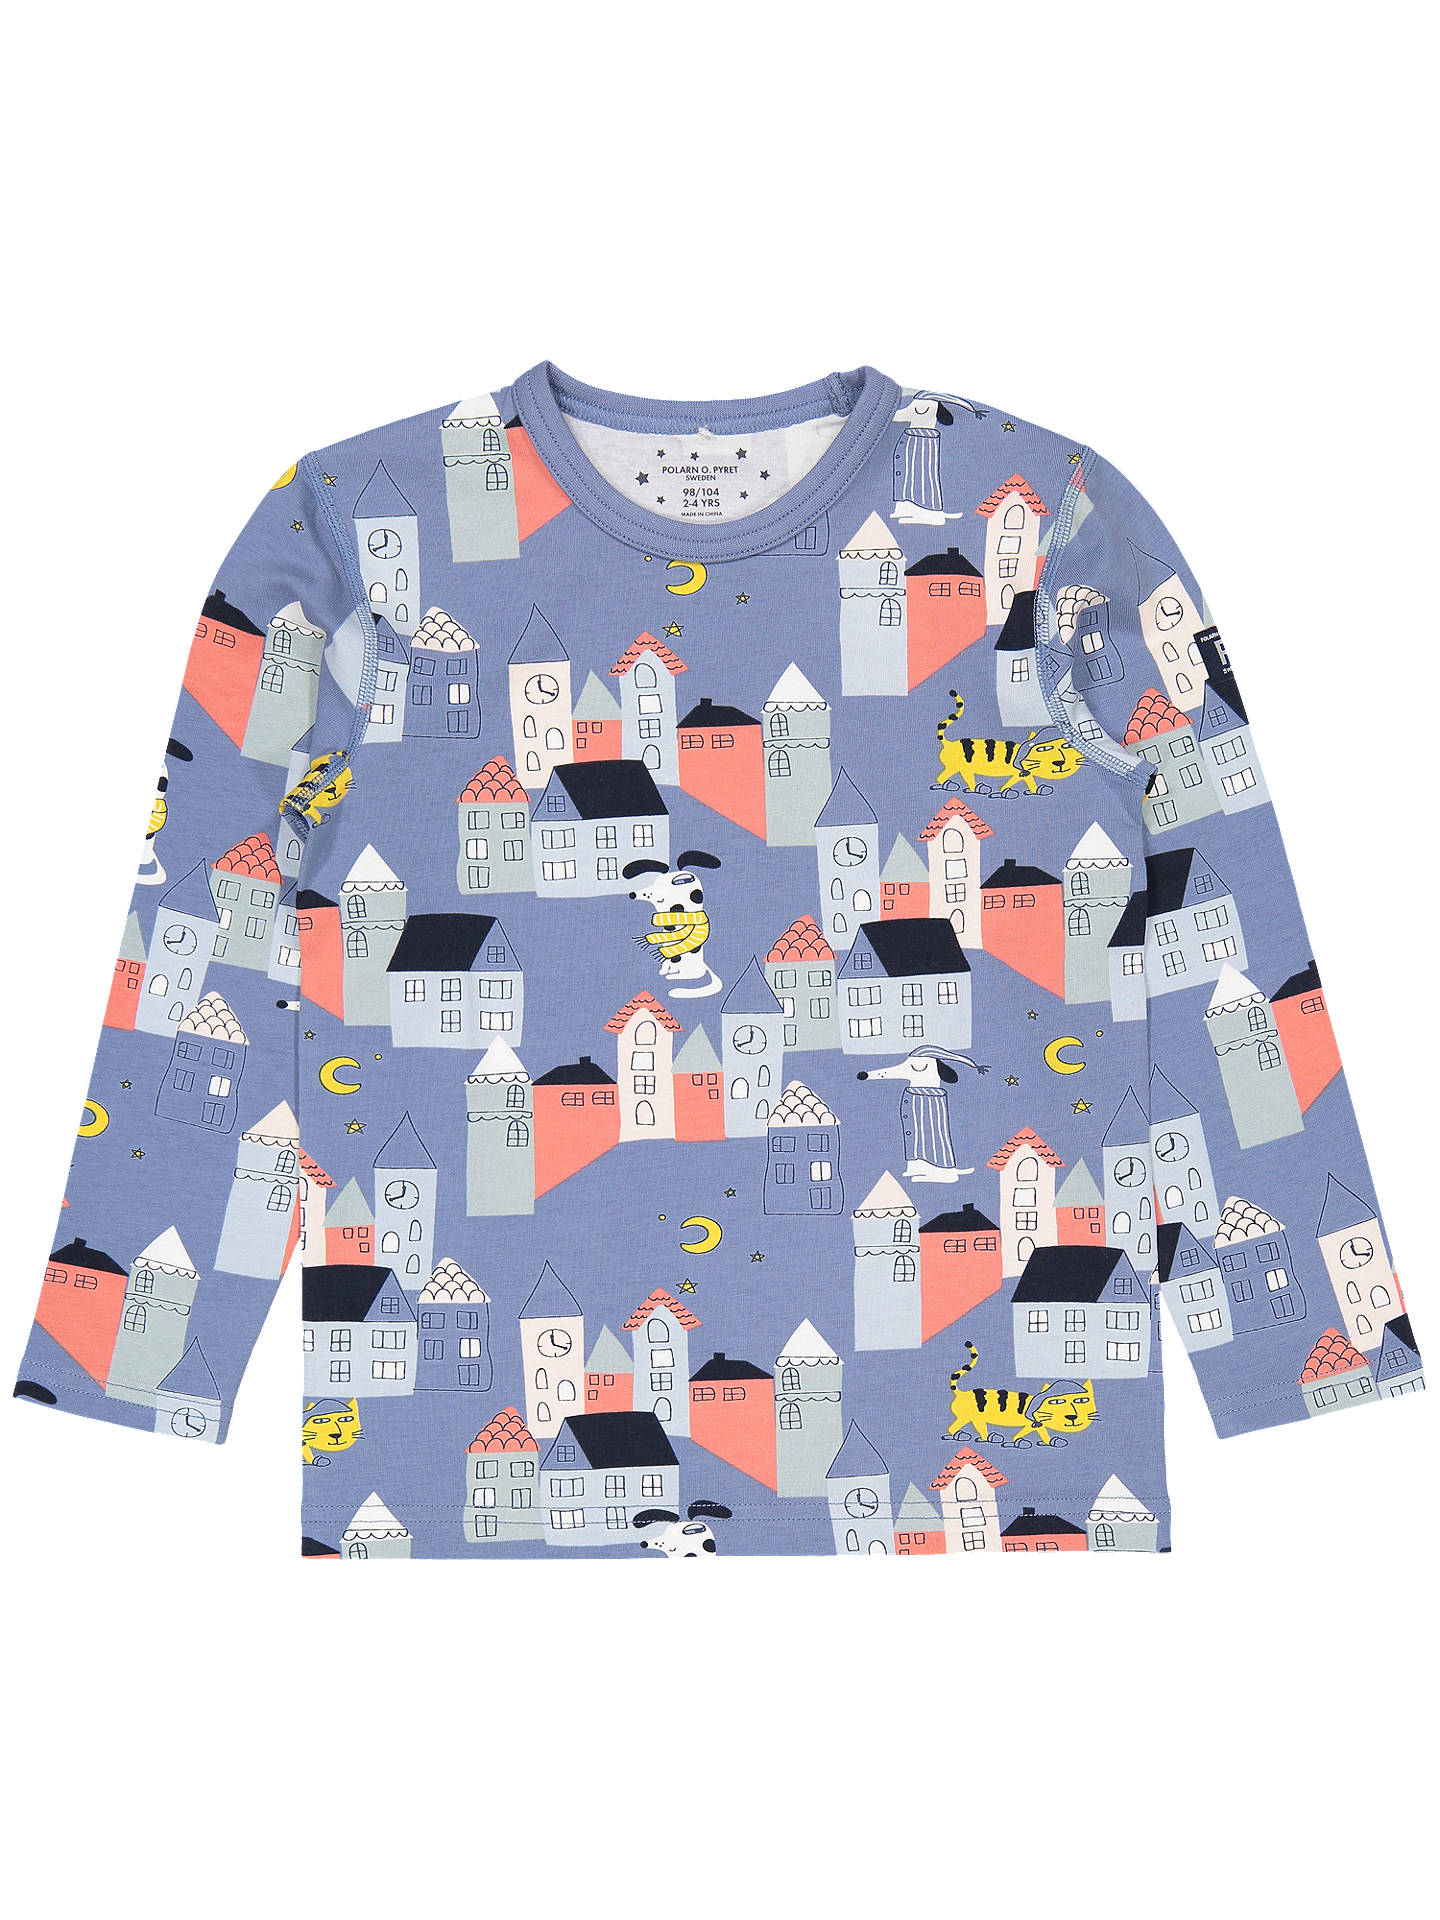 BuyPolarn O. Pyret Baby's Town Pyjamas, Blue, 12-24 months Online at johnlewis.com